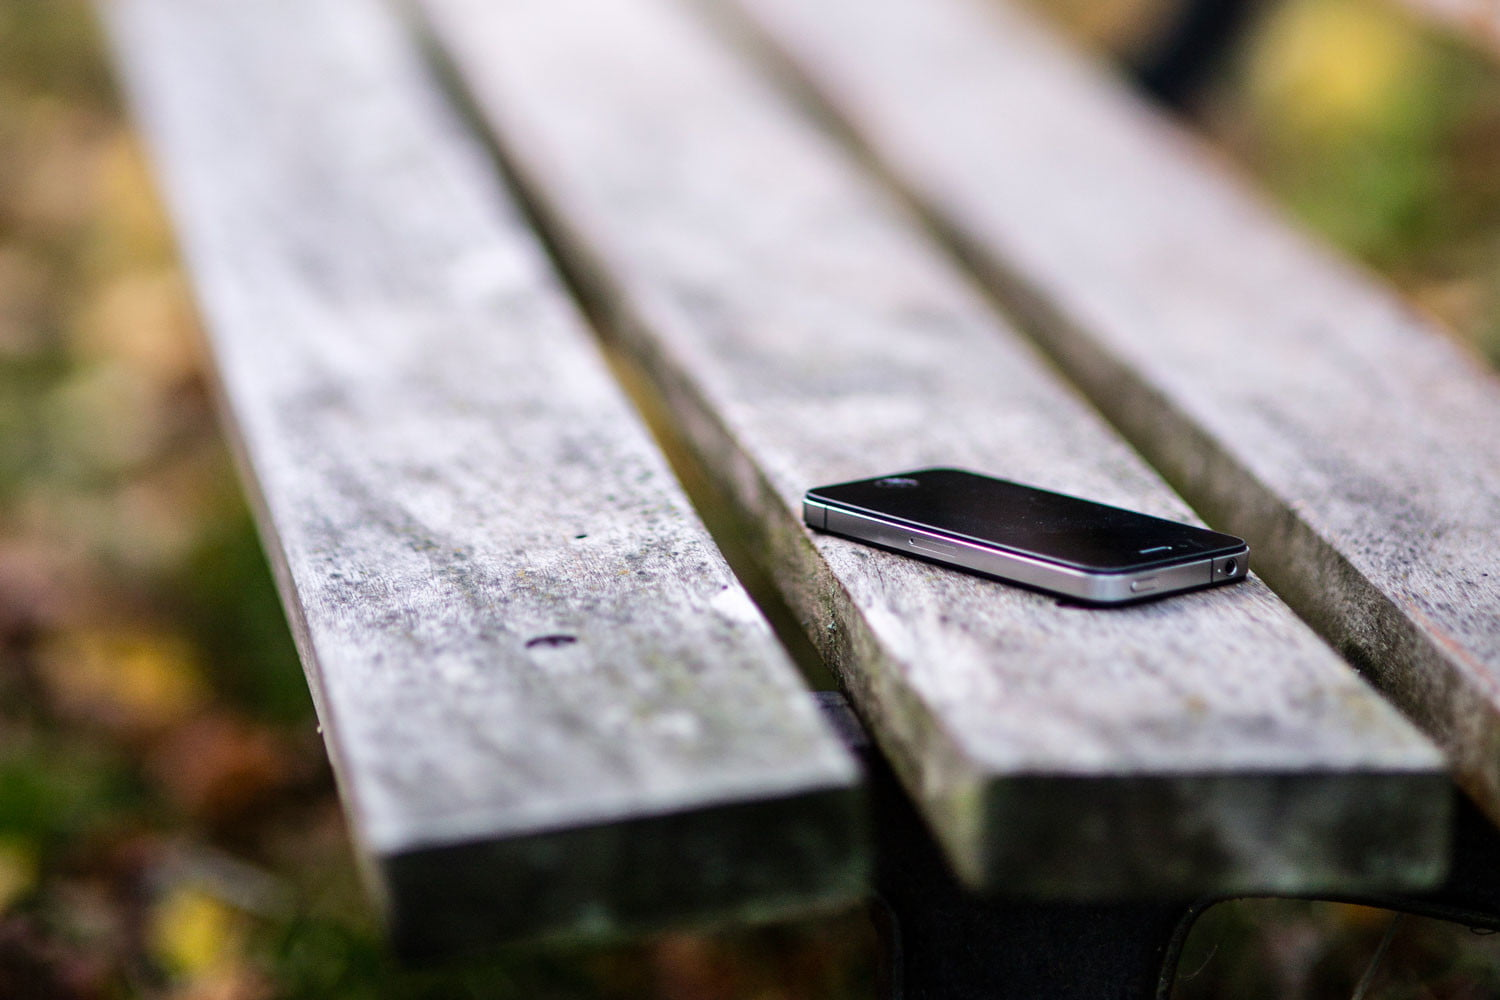 How to Find a Lost Phone | Digital Trends